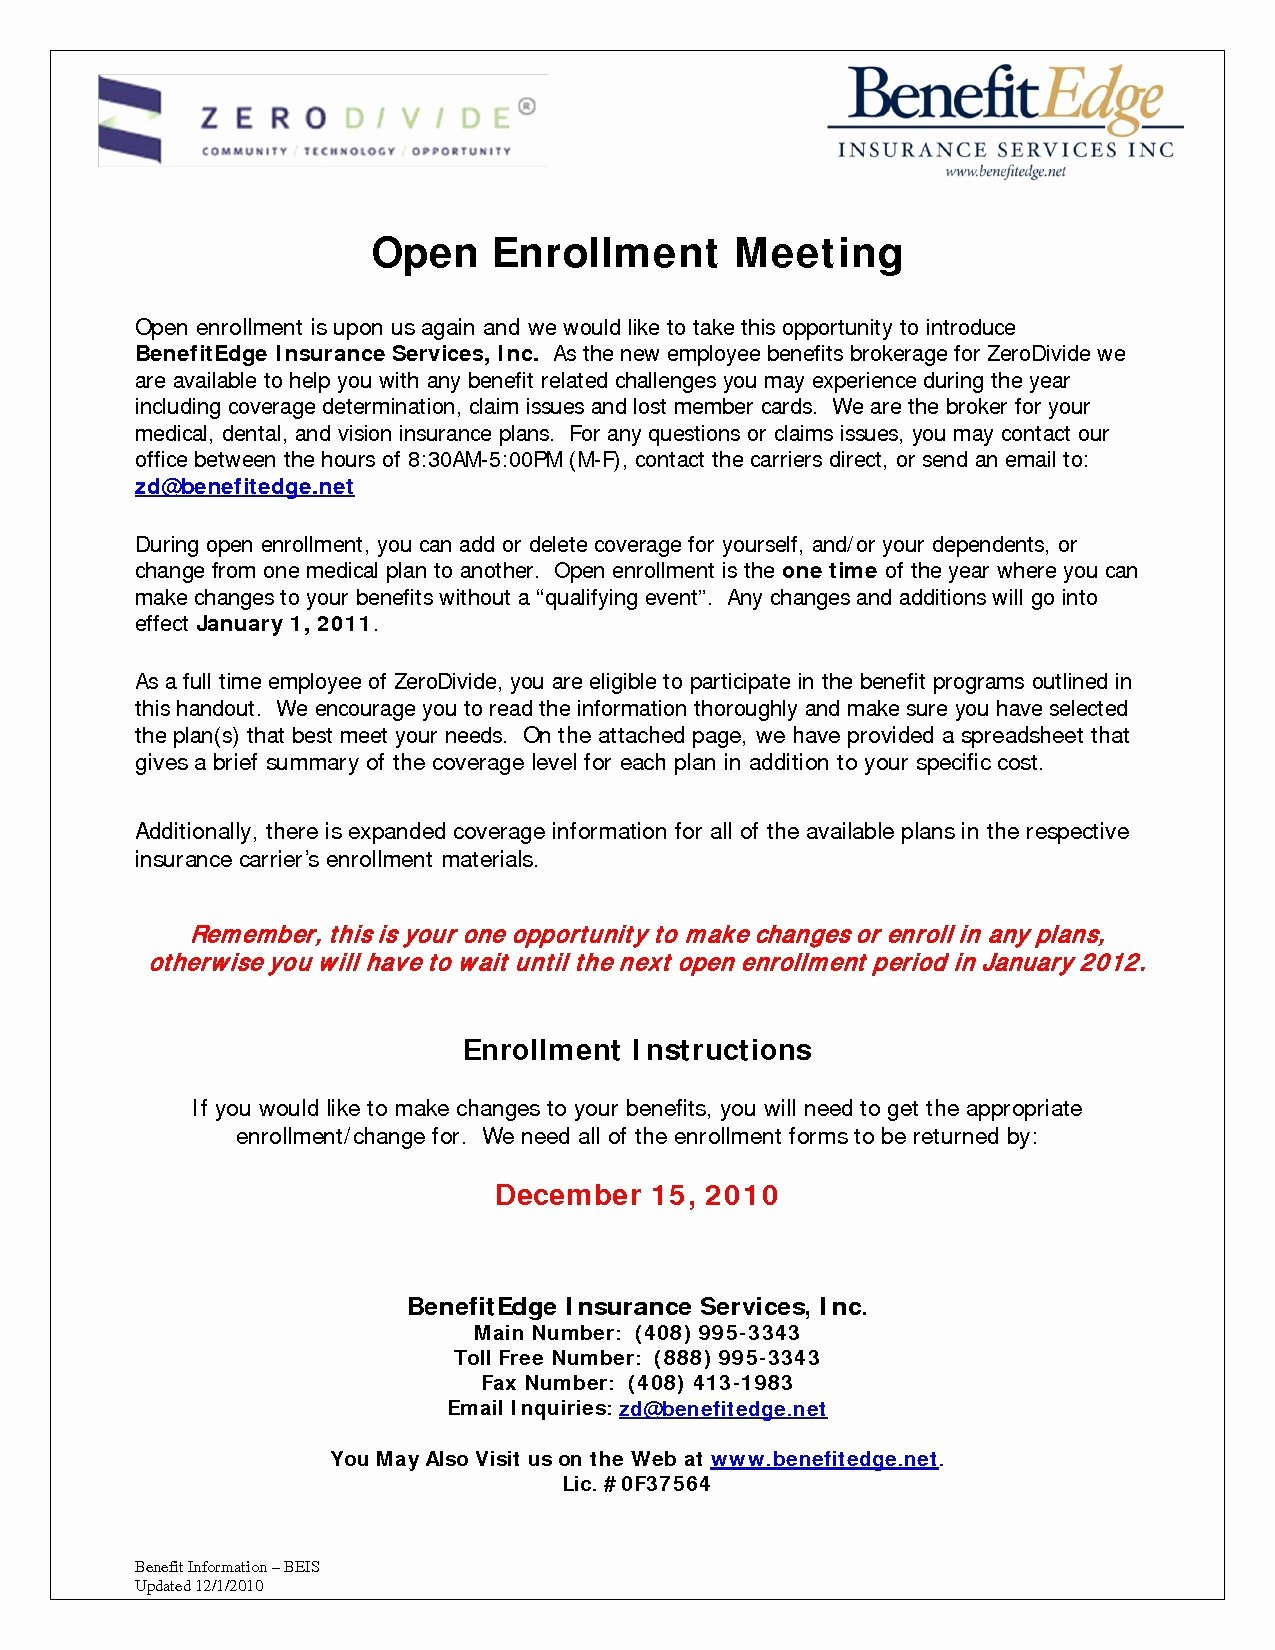 Open Enrollment Letters to Employees Fresh Open Enrollment Template Letter Download